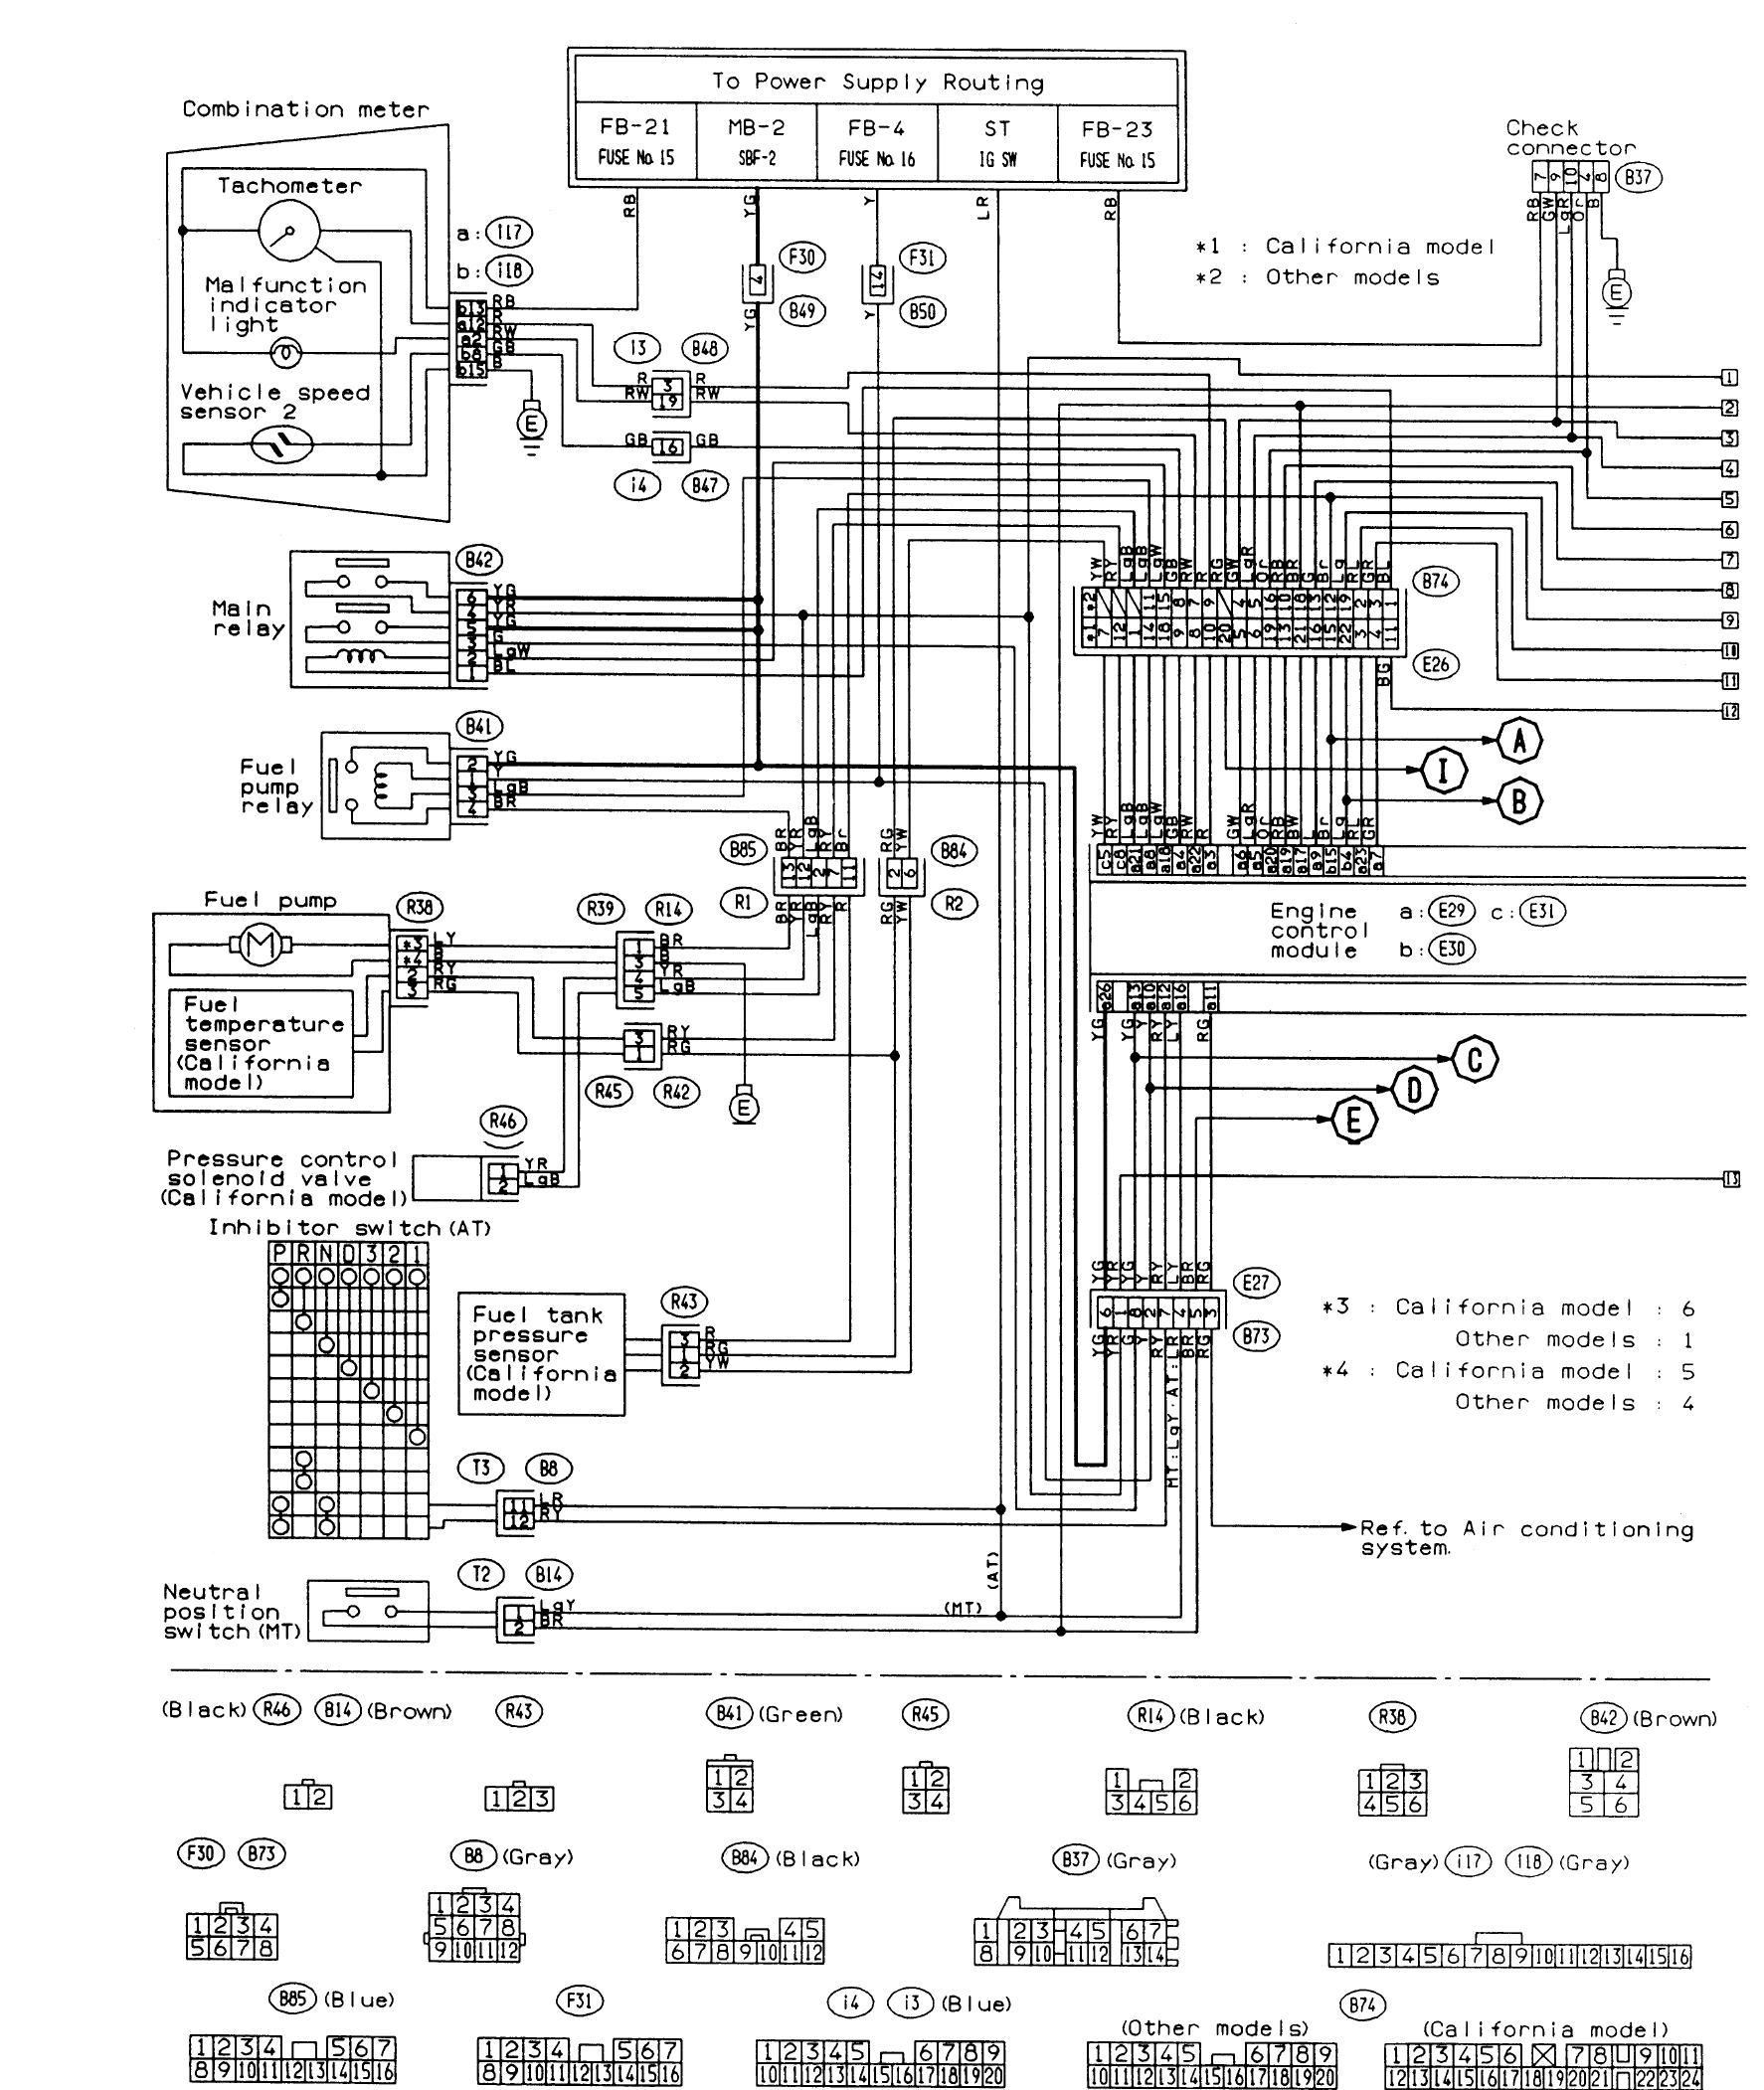 subaru ecu wiring diagram FUSlrCX subaru wiring diagrams 1992 subaru legacy heater wiring schematic  at reclaimingppi.co